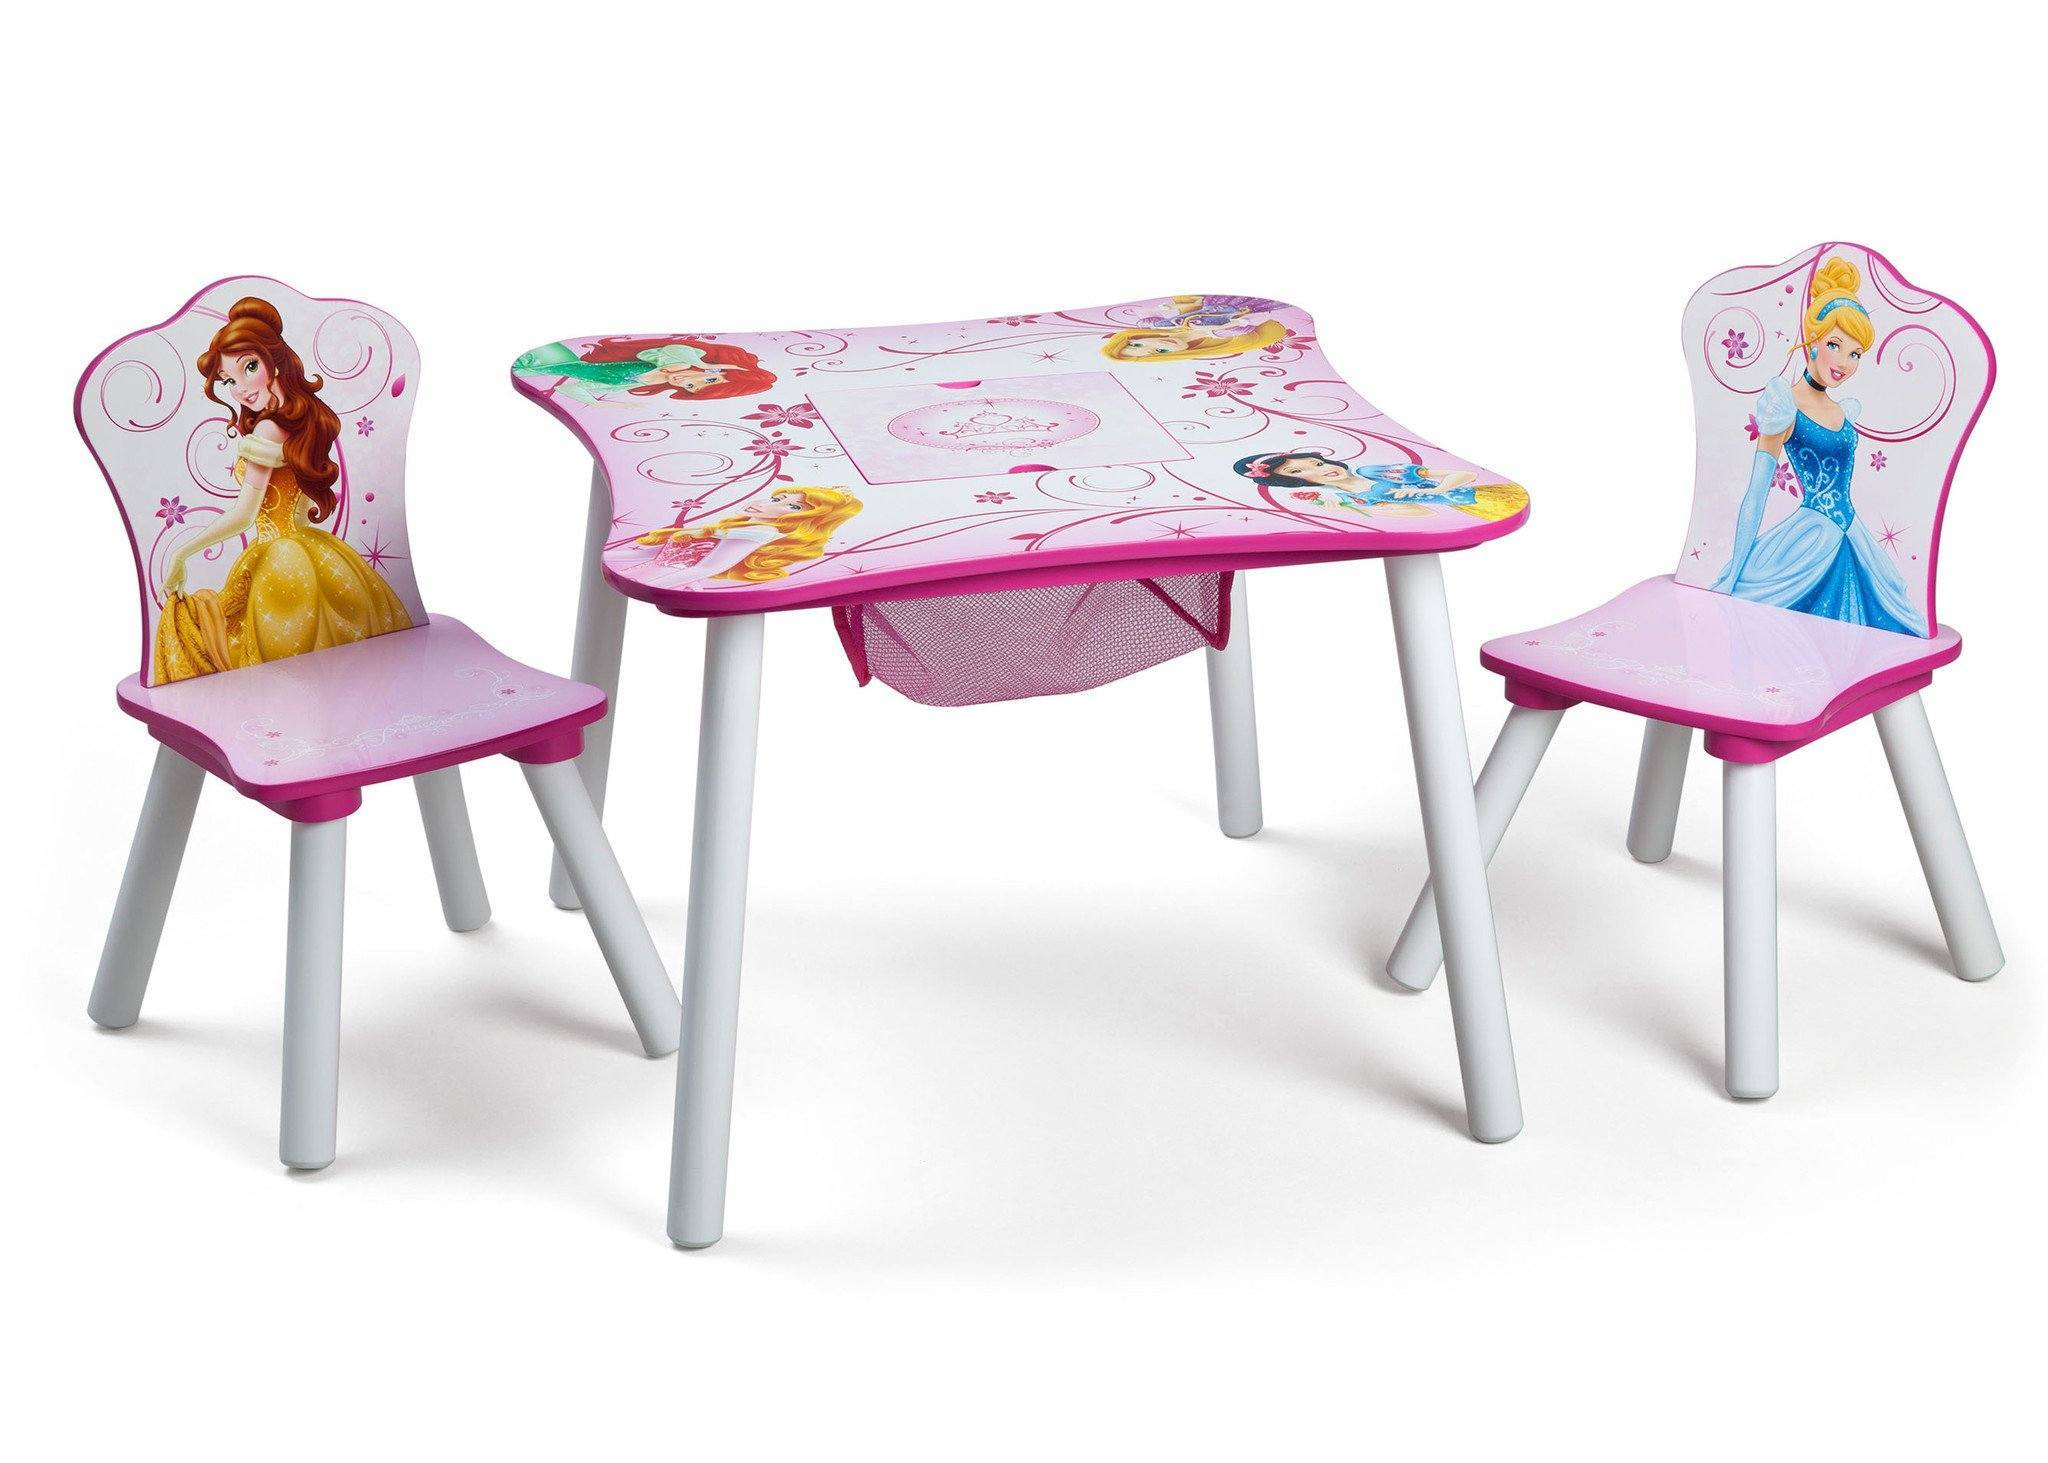 Delta Children  Princess Table and Chair Set with Storage Right View a1a